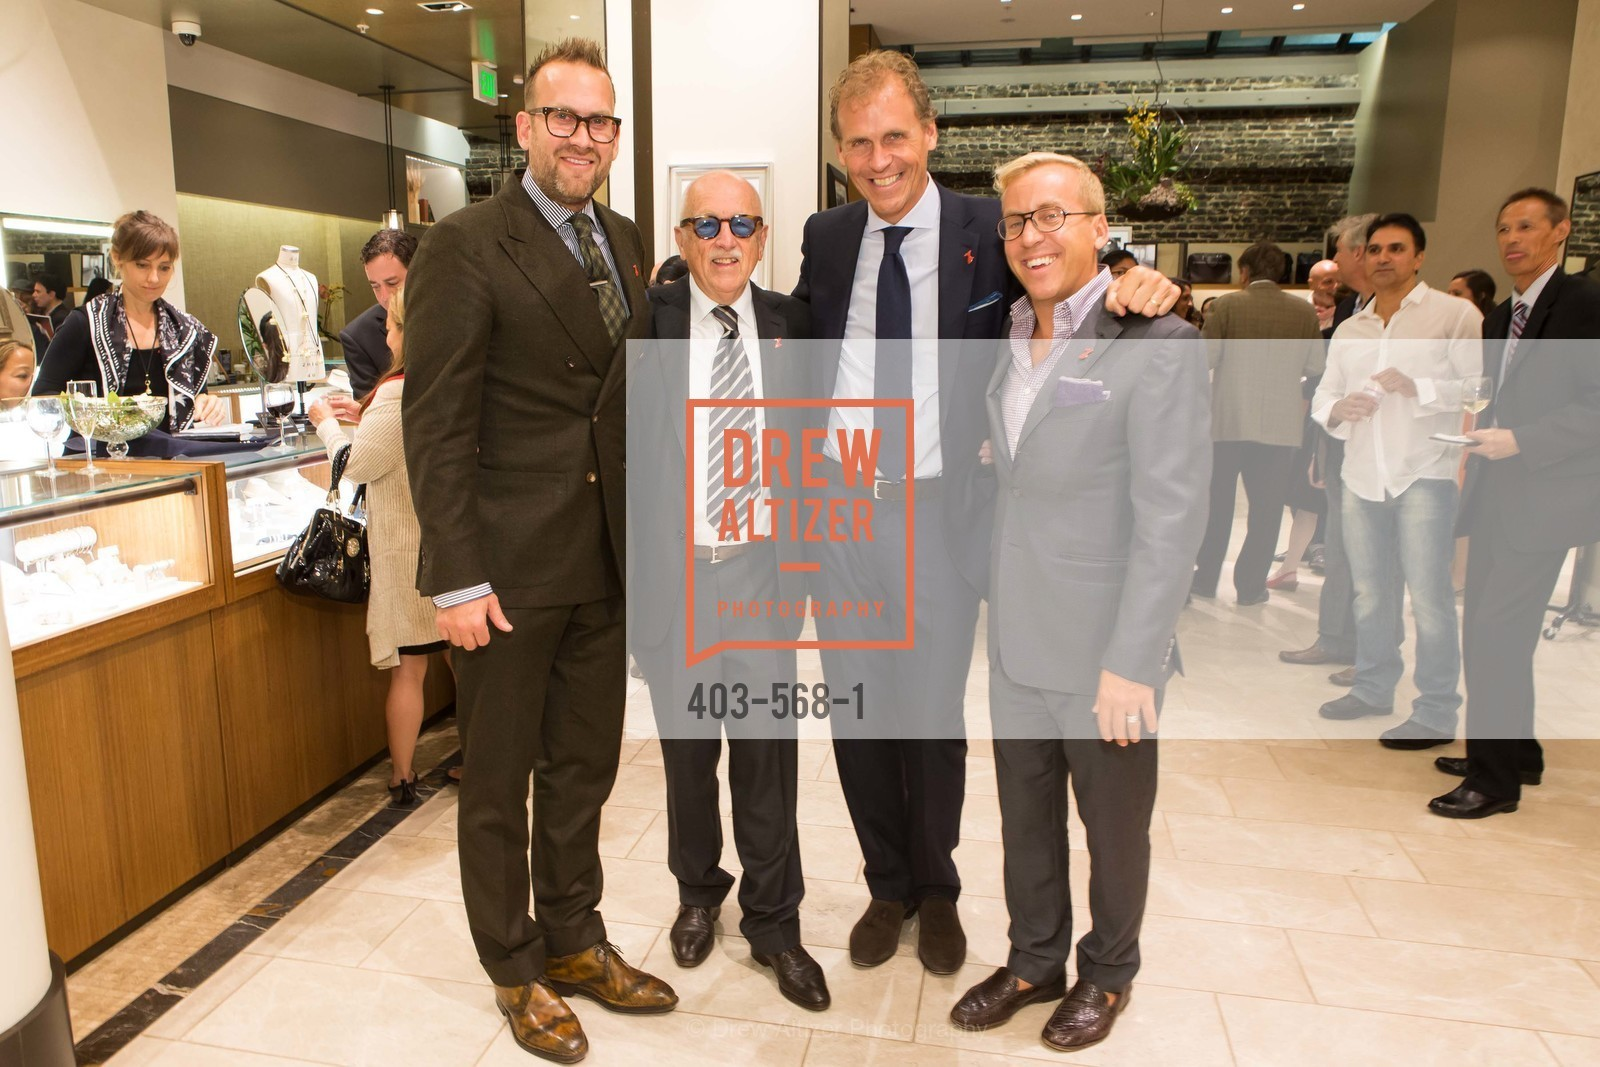 Tyler Mitchell, Wilkes Bashford, Andrew Mitchell, SOTHEBY'S  Hosts a Private Viewing of Highlights from the Collection of MRS. PAUL MELLON, US, September 17th, 2014,Drew Altizer, Drew Altizer Photography, full-service agency, private events, San Francisco photographer, photographer california